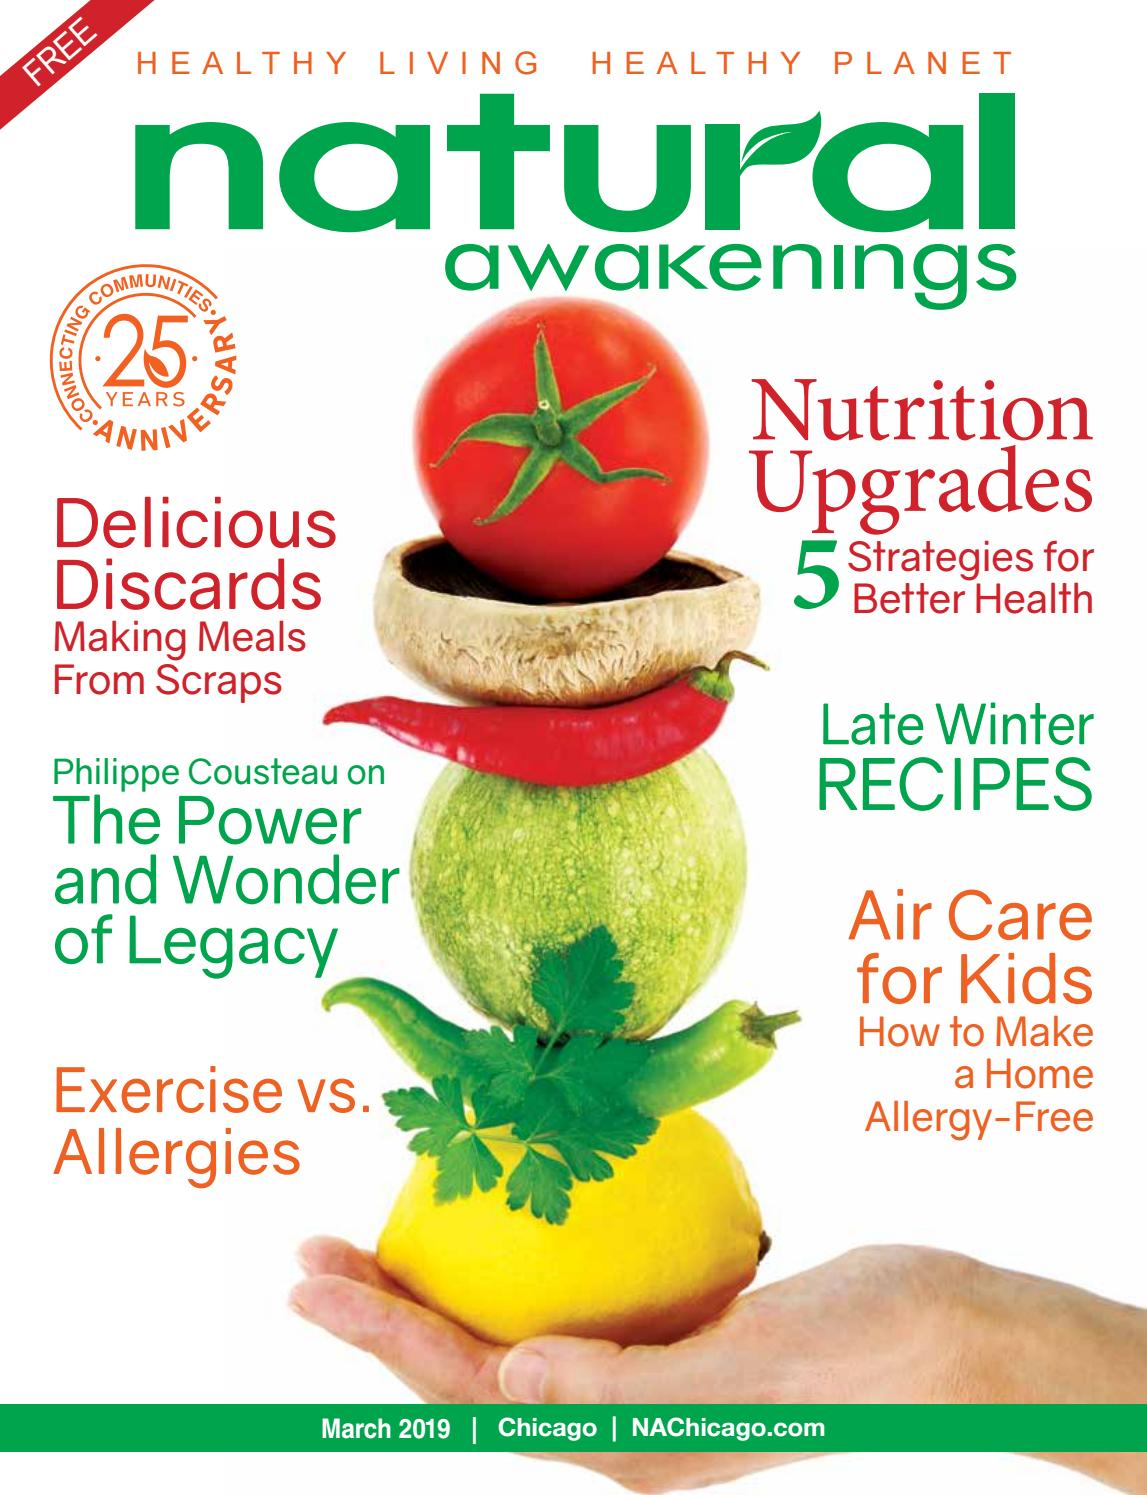 March 2019 Natural Awakenings Chicago magazine